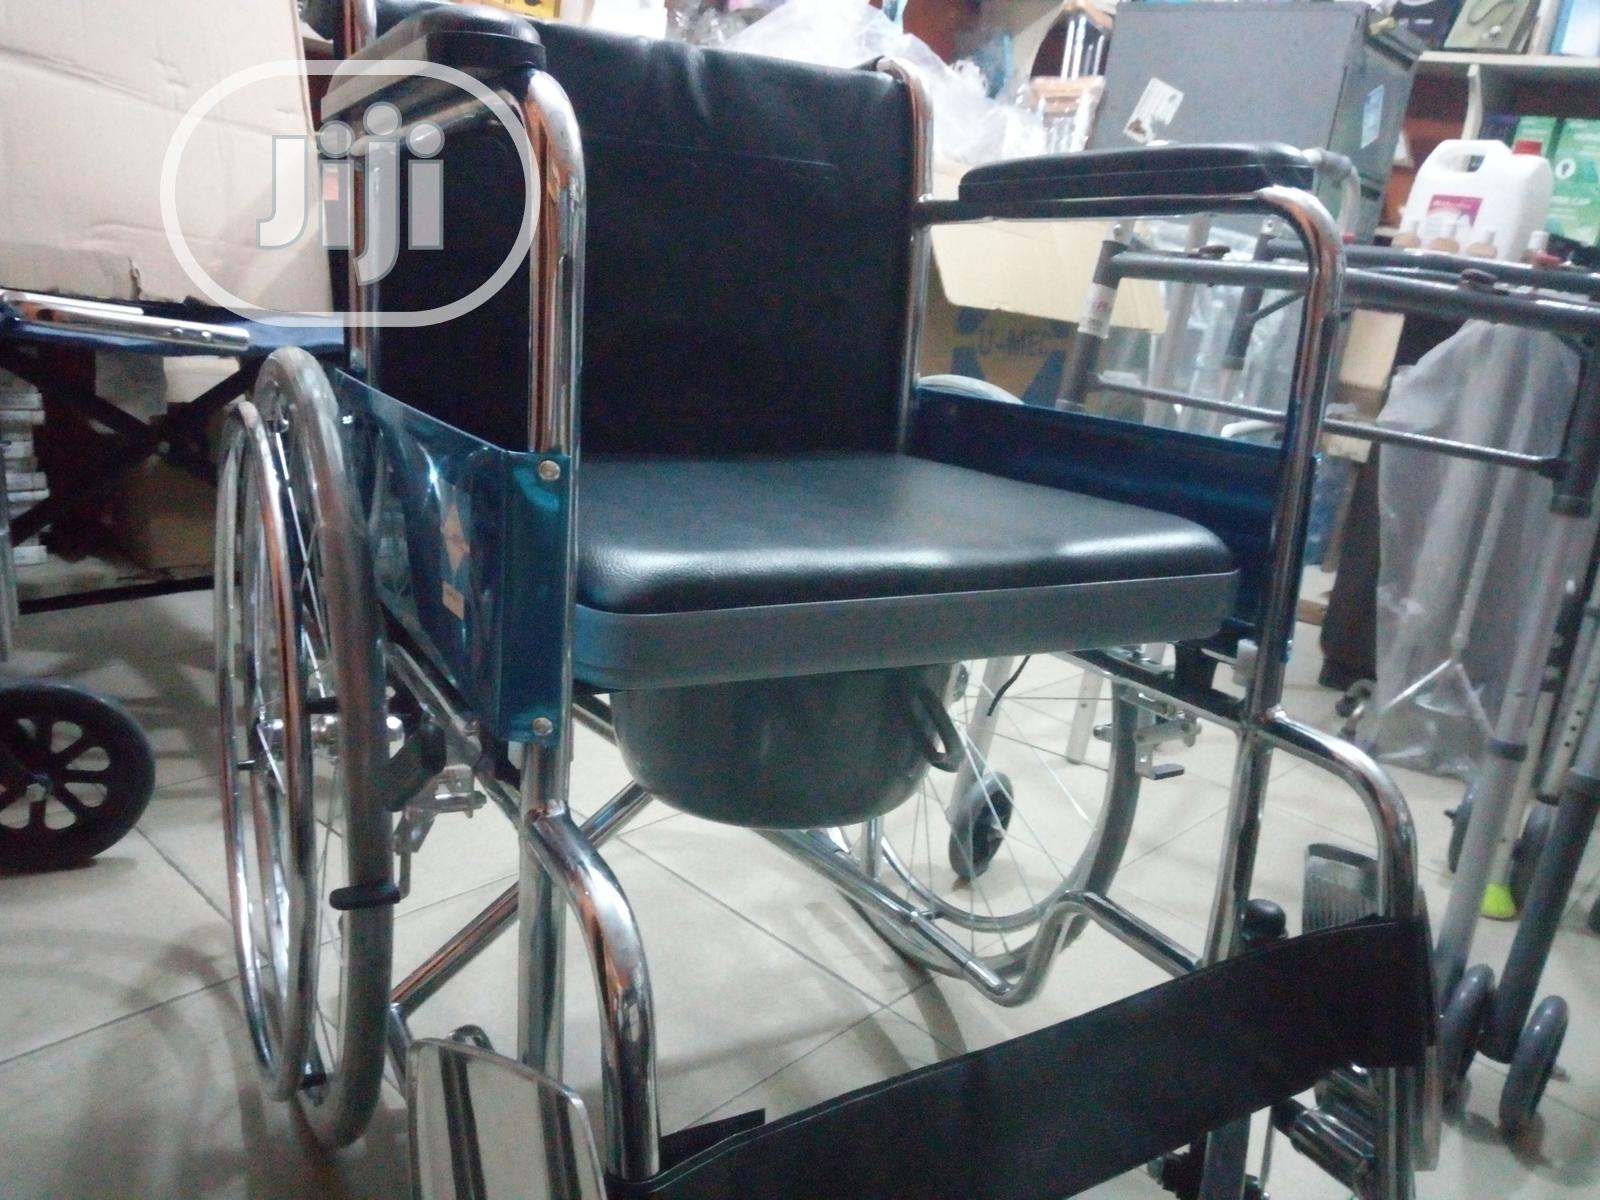 Archive: Wheelchair Commod